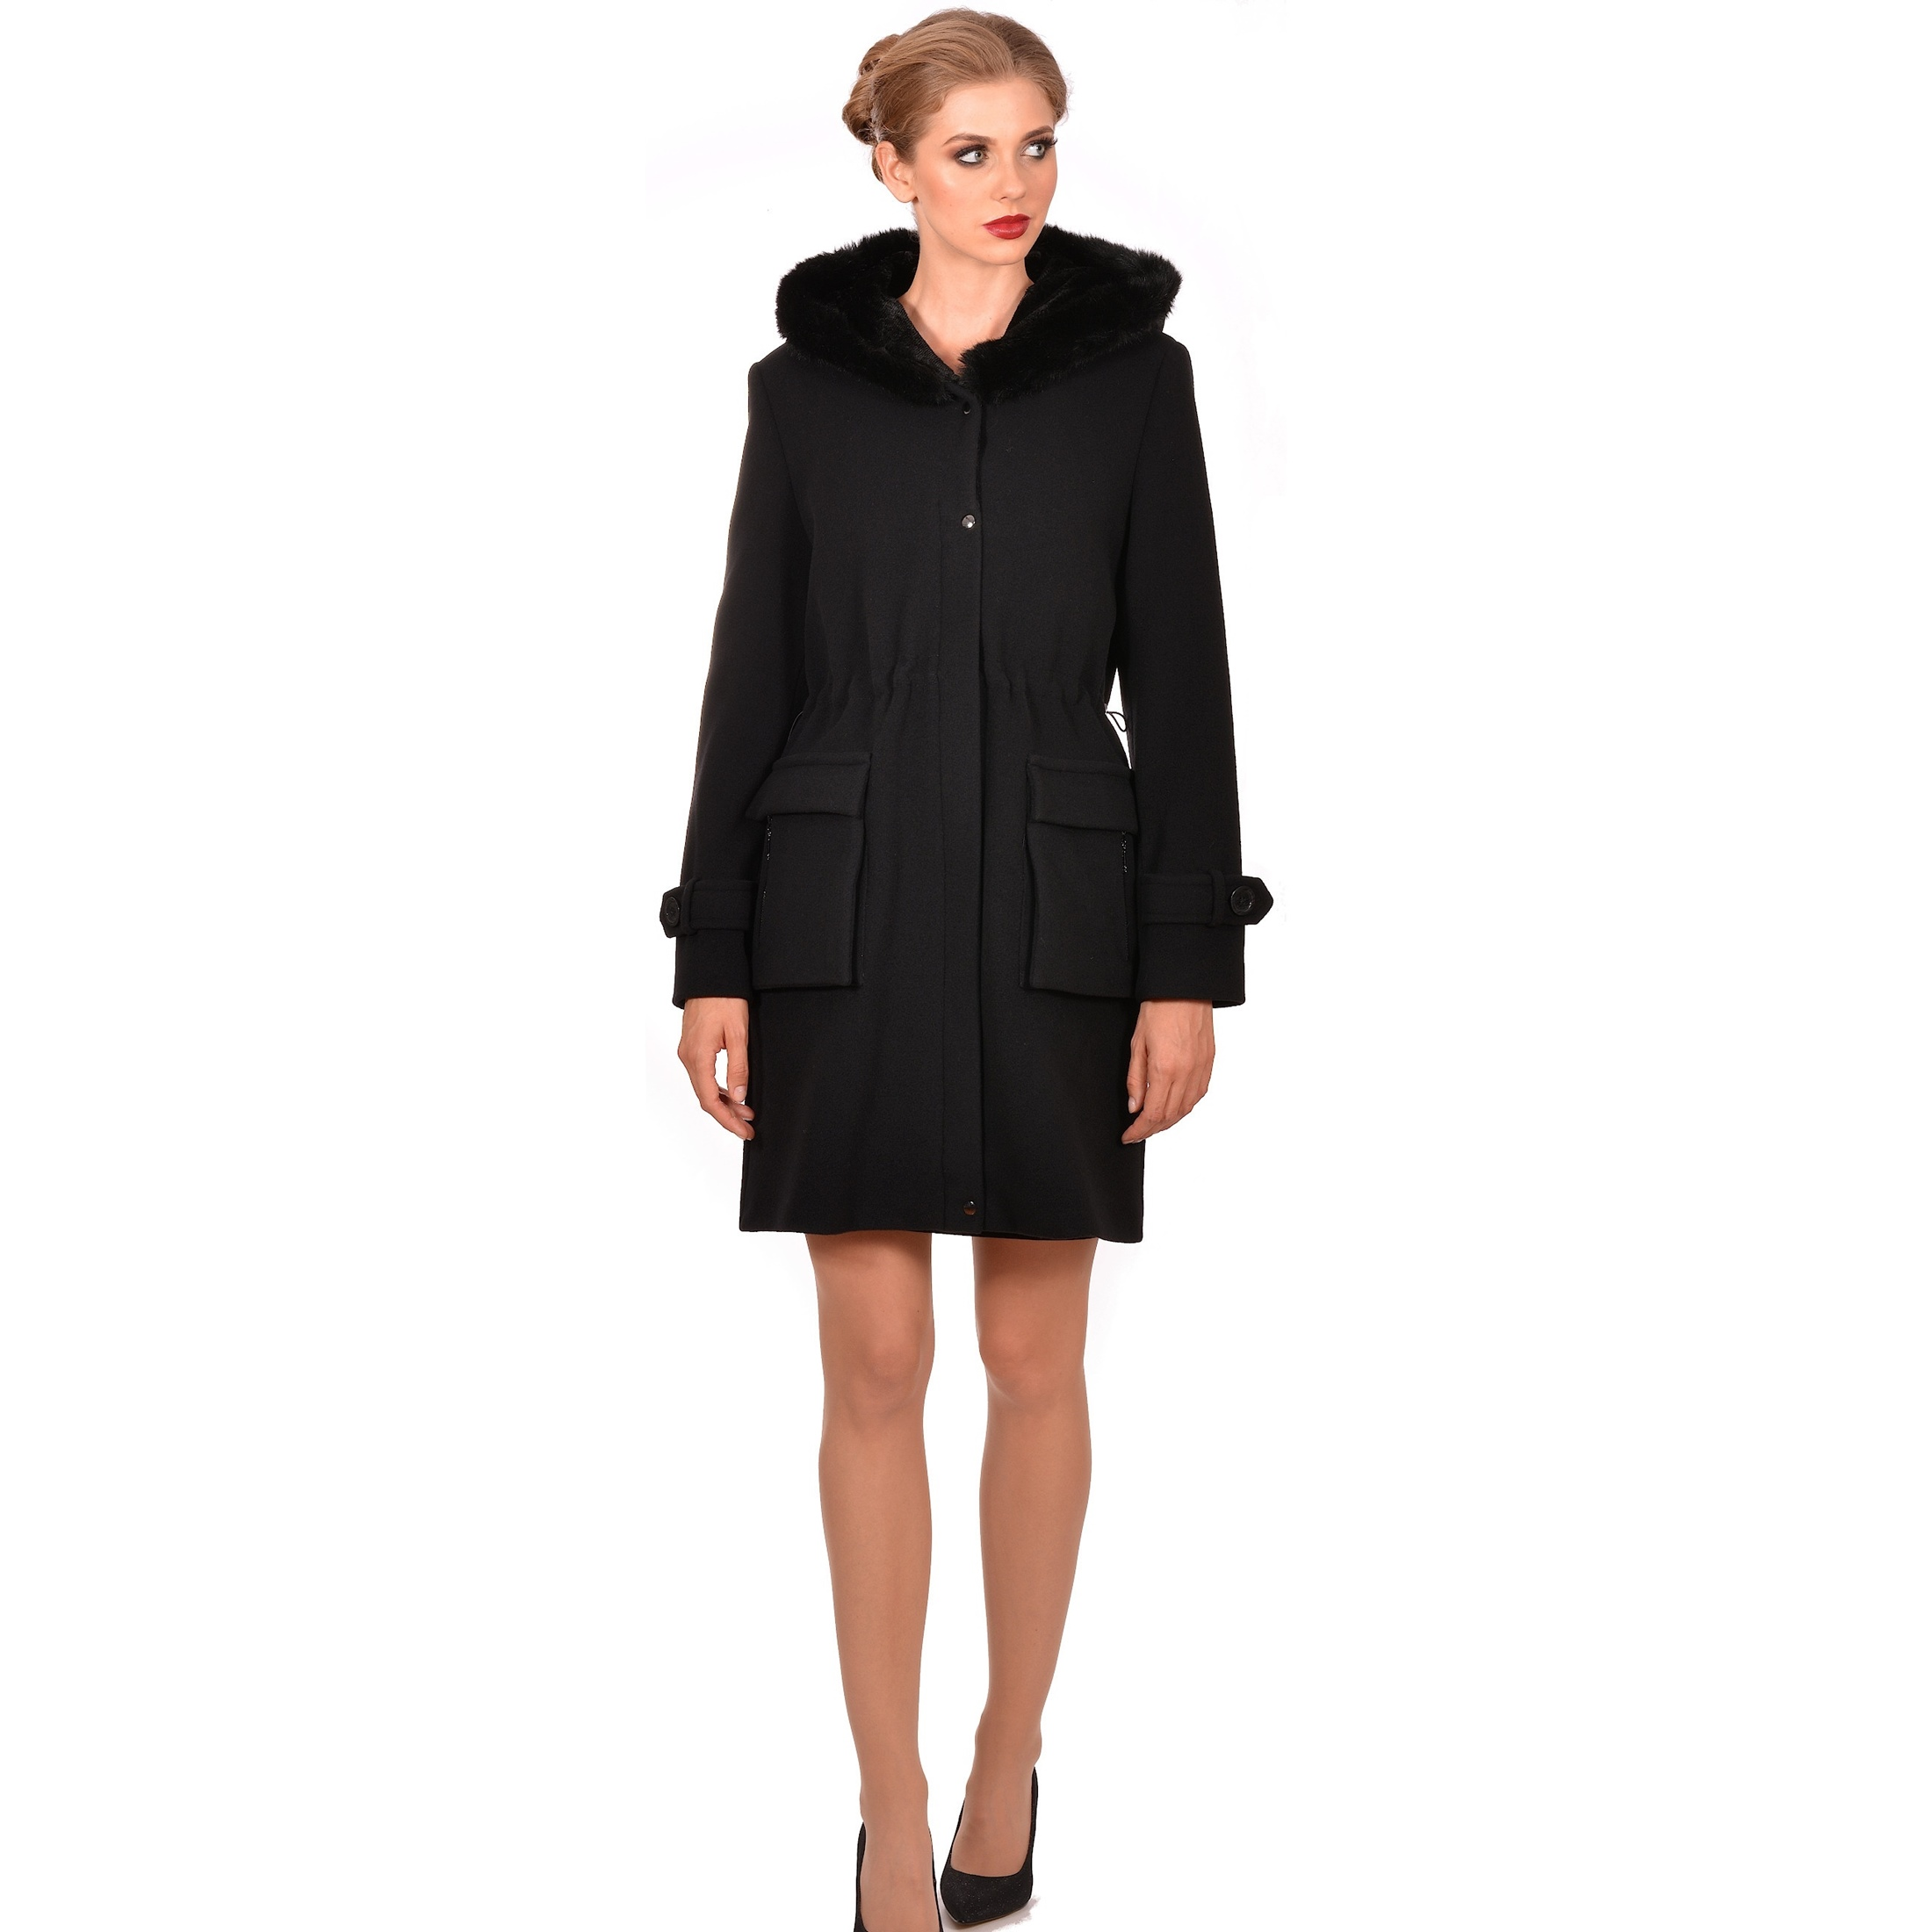 ženski kaput lady m crni,women's coat lady m black